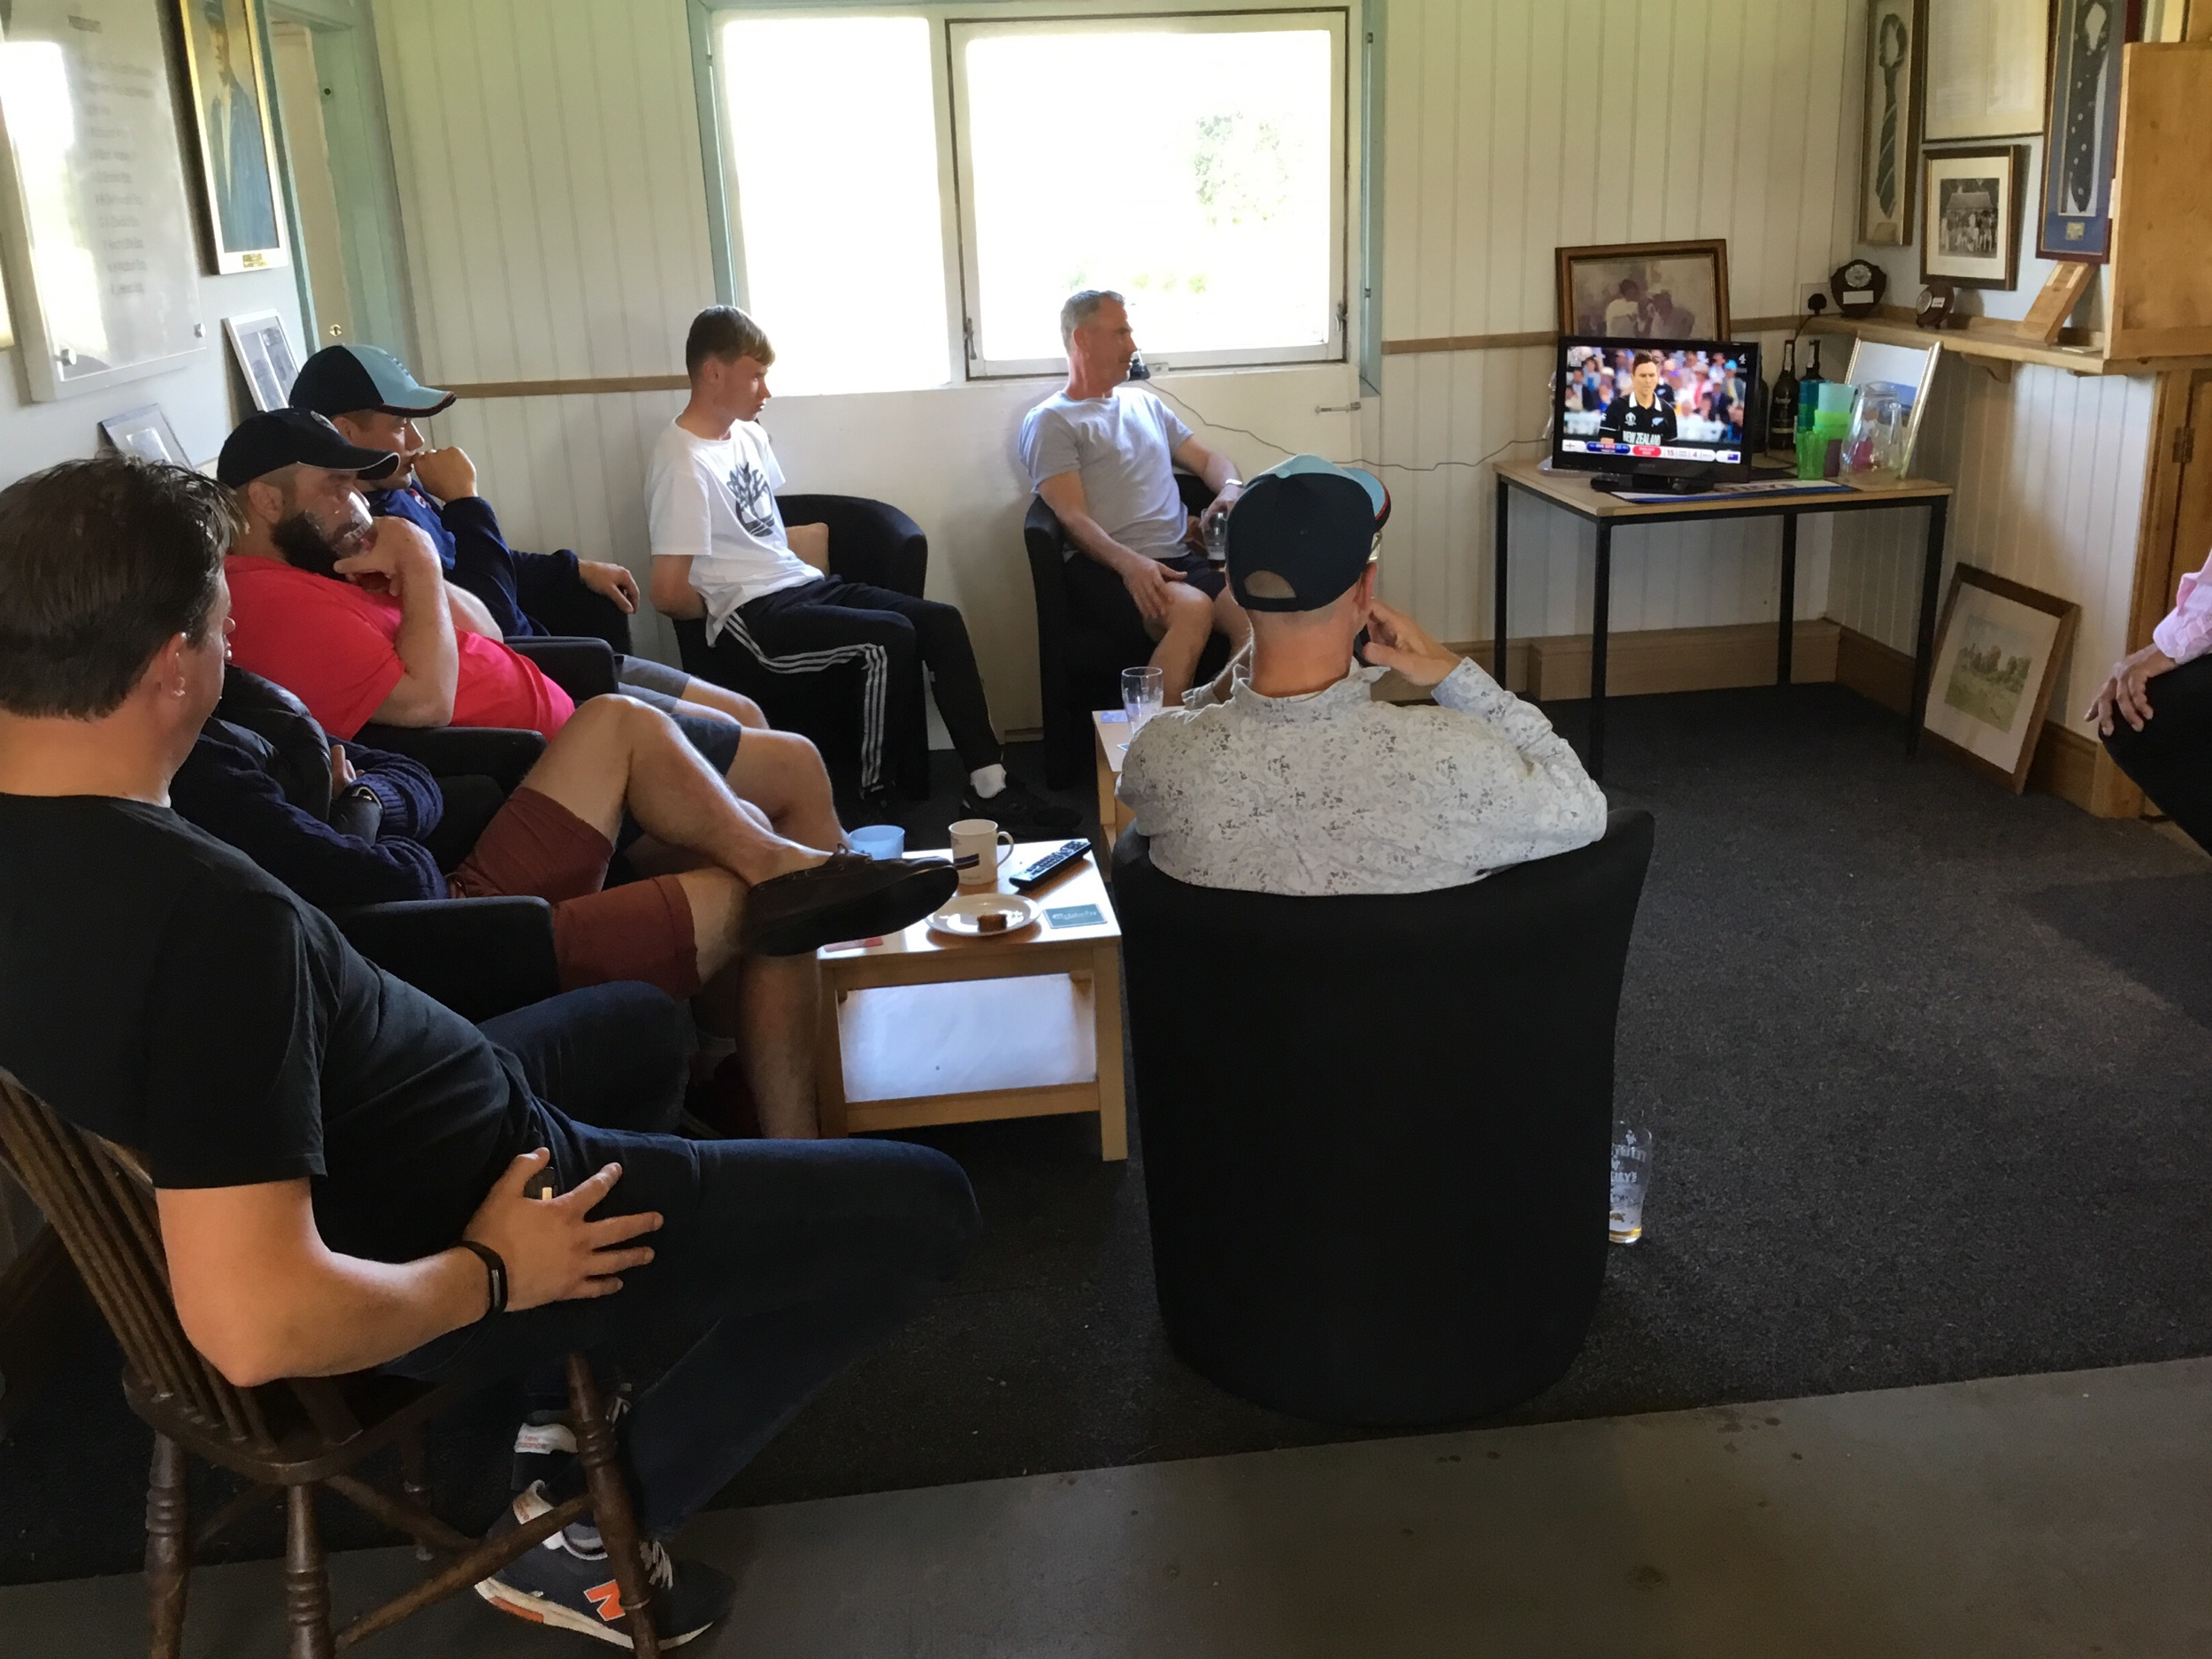 Tense moments in the Pavilion watching the Super Over after the victory against the Penguins.